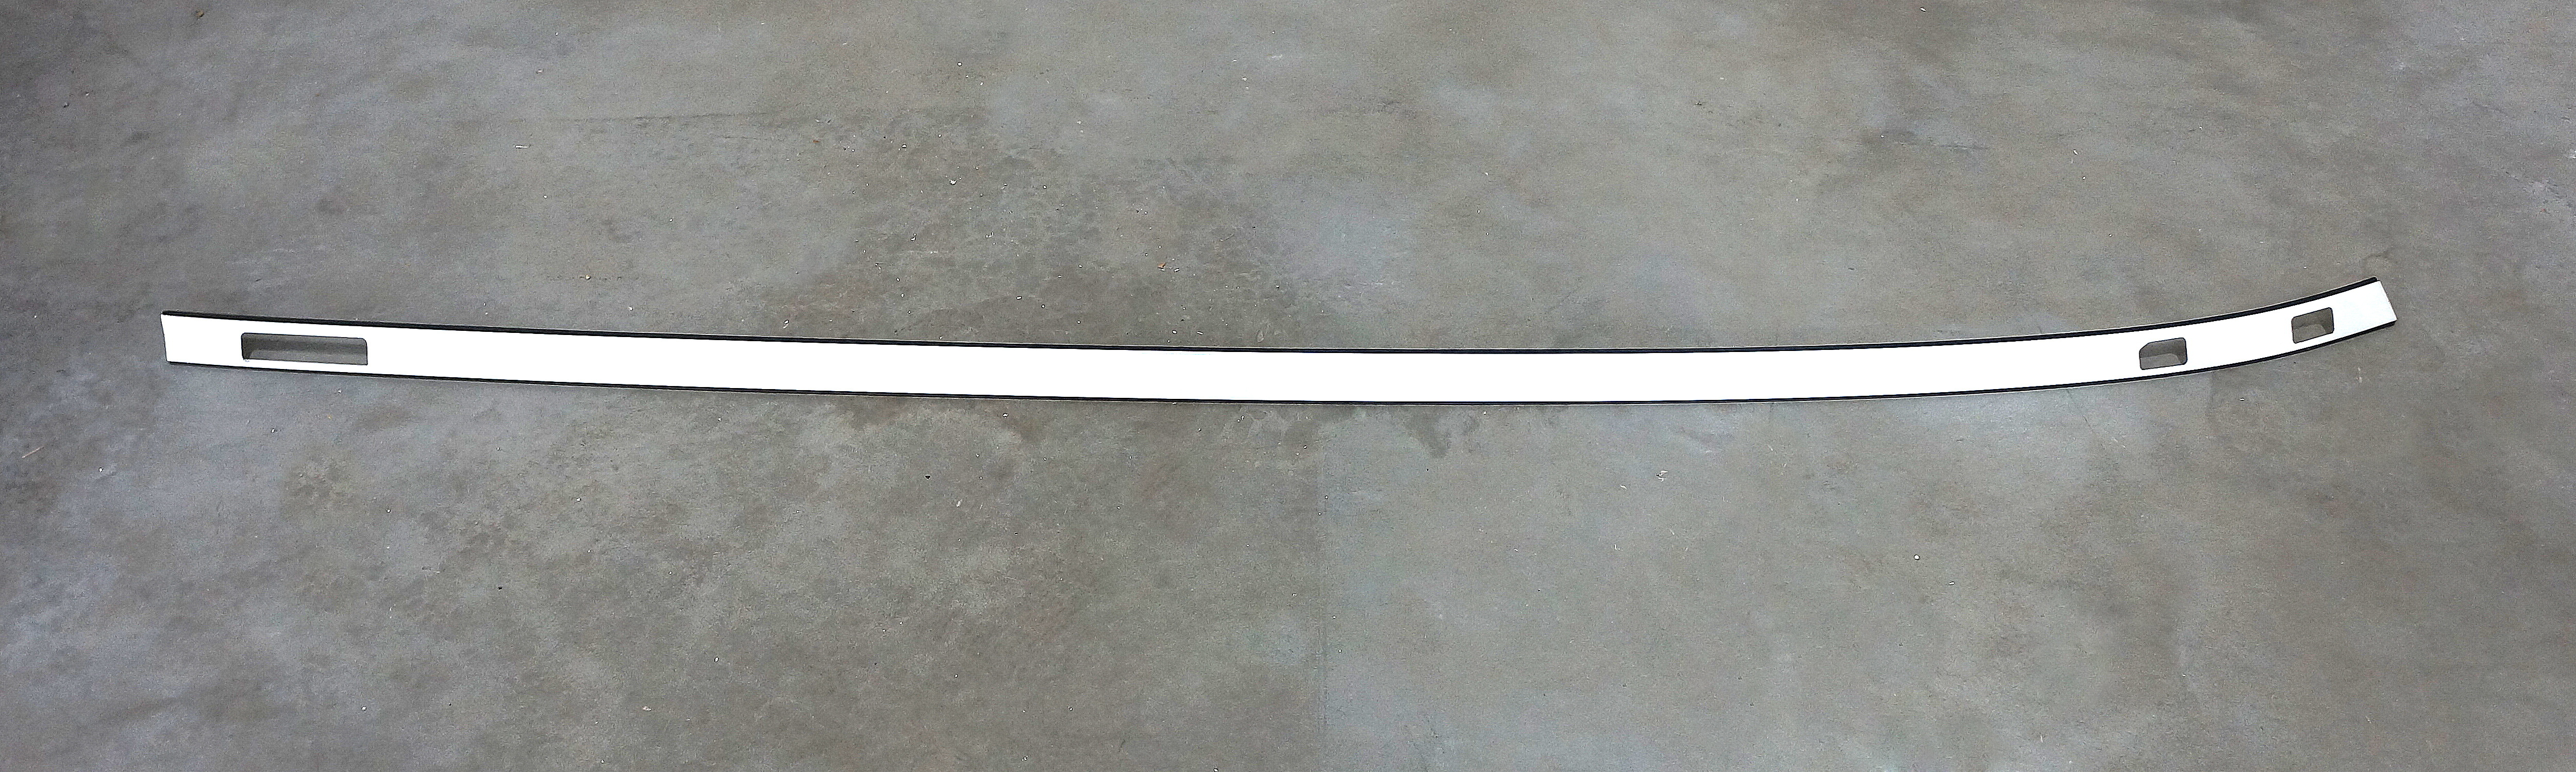 LH Roof Molding/Plate for Saab 9-3 SportCombi w/ Roof Rail (Unpainted)